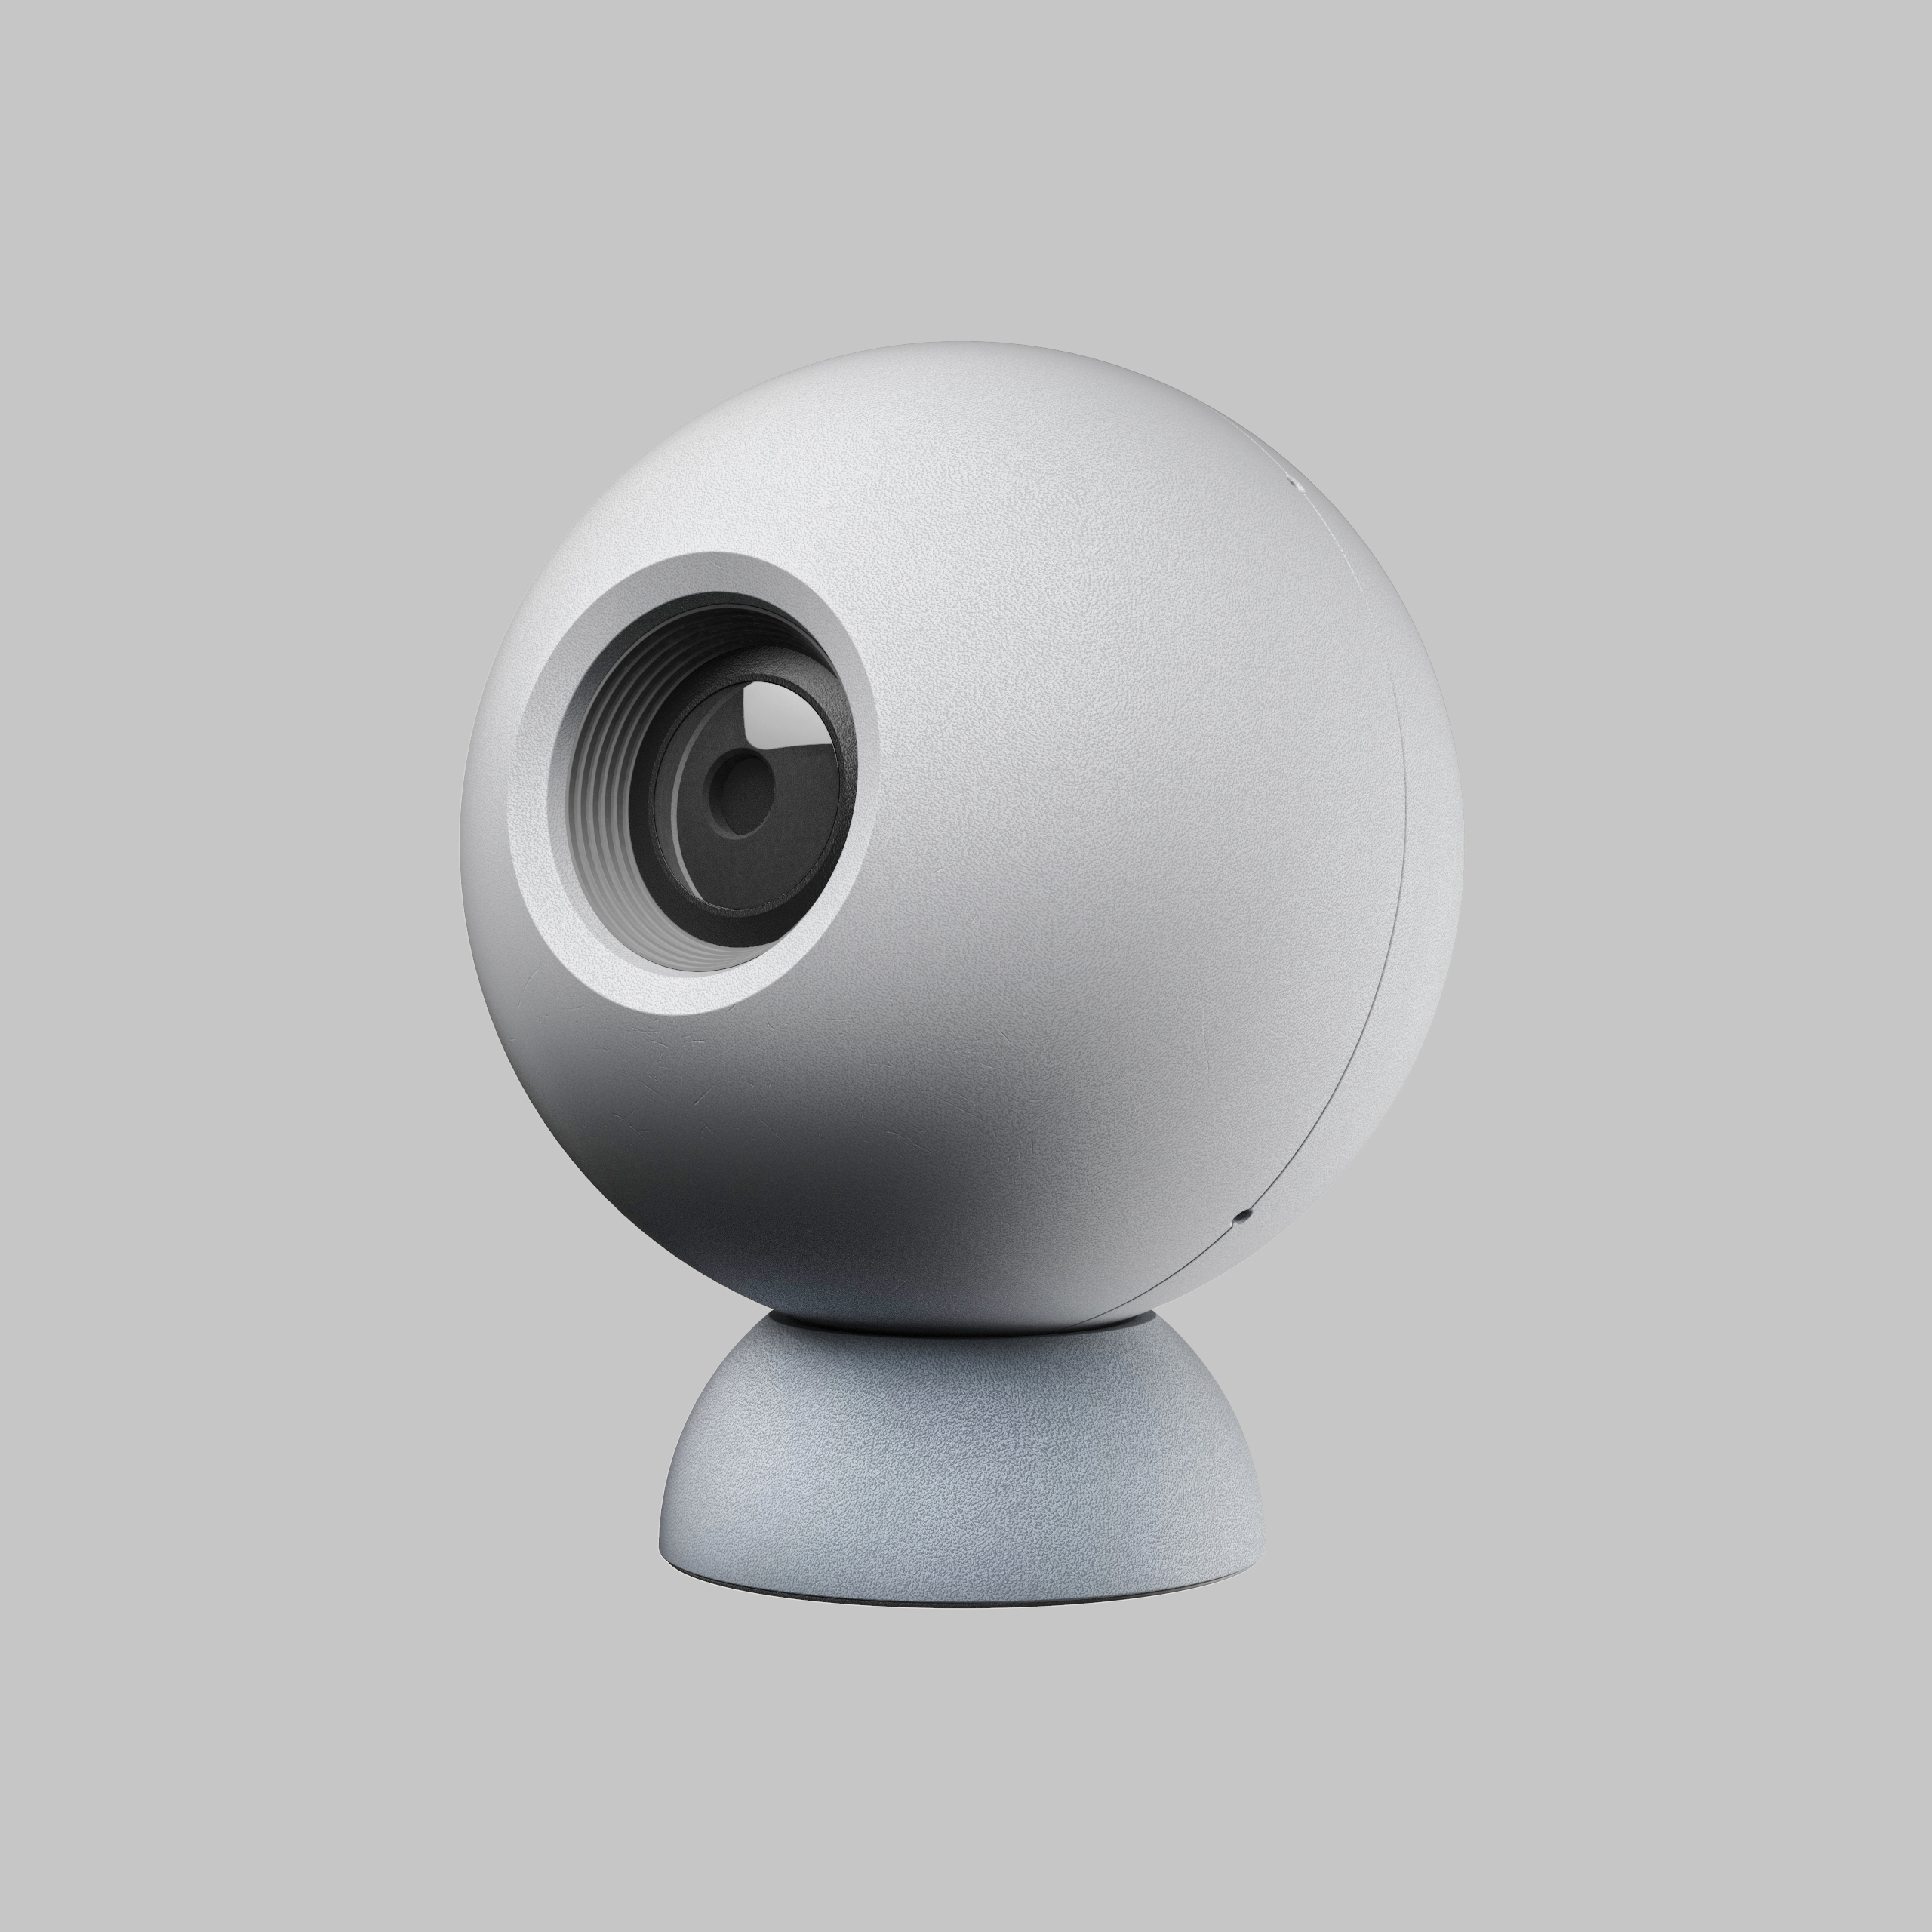 sight sphere web design lemanoosh cam camera industrial concept